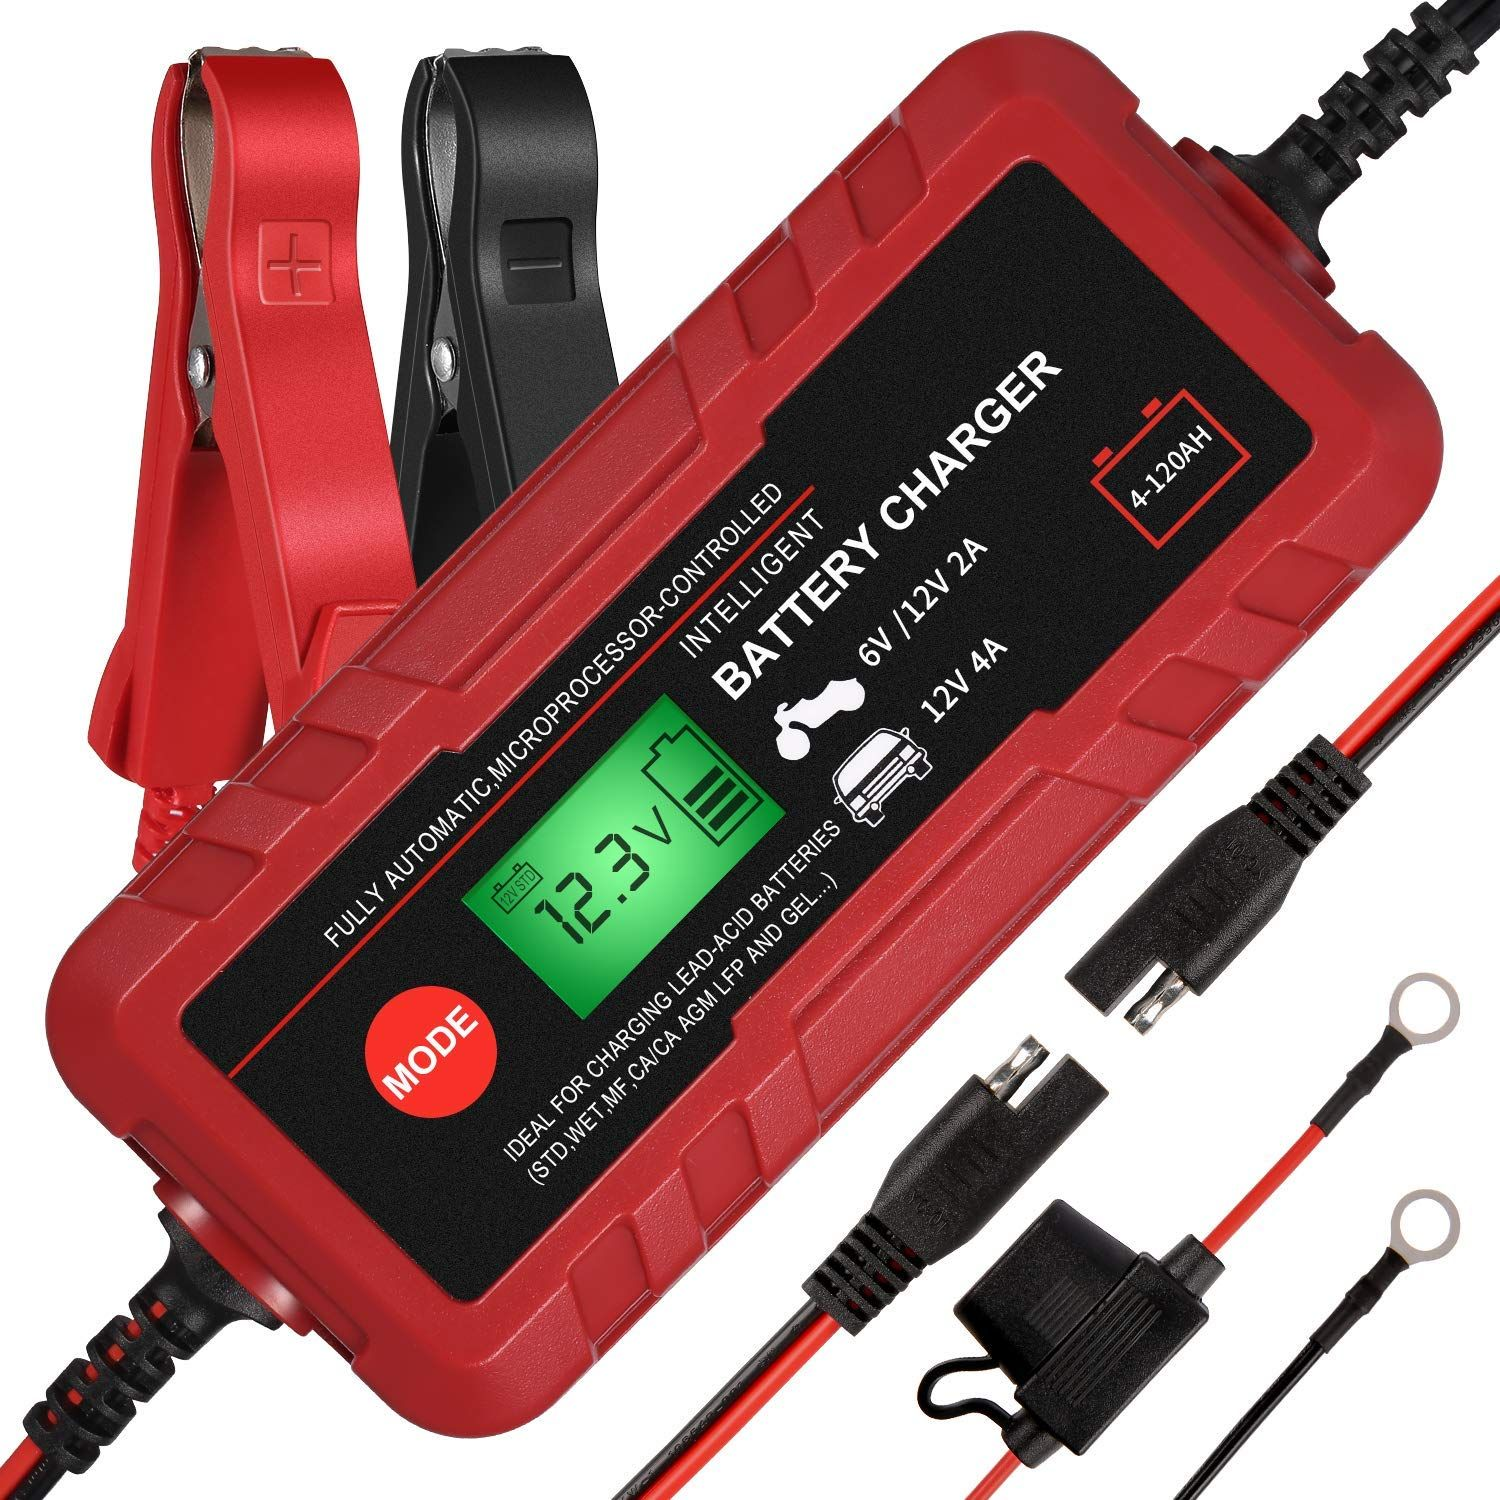 Adakiit 6/12V 4A Smart Battery Charger/Maintainer Fully